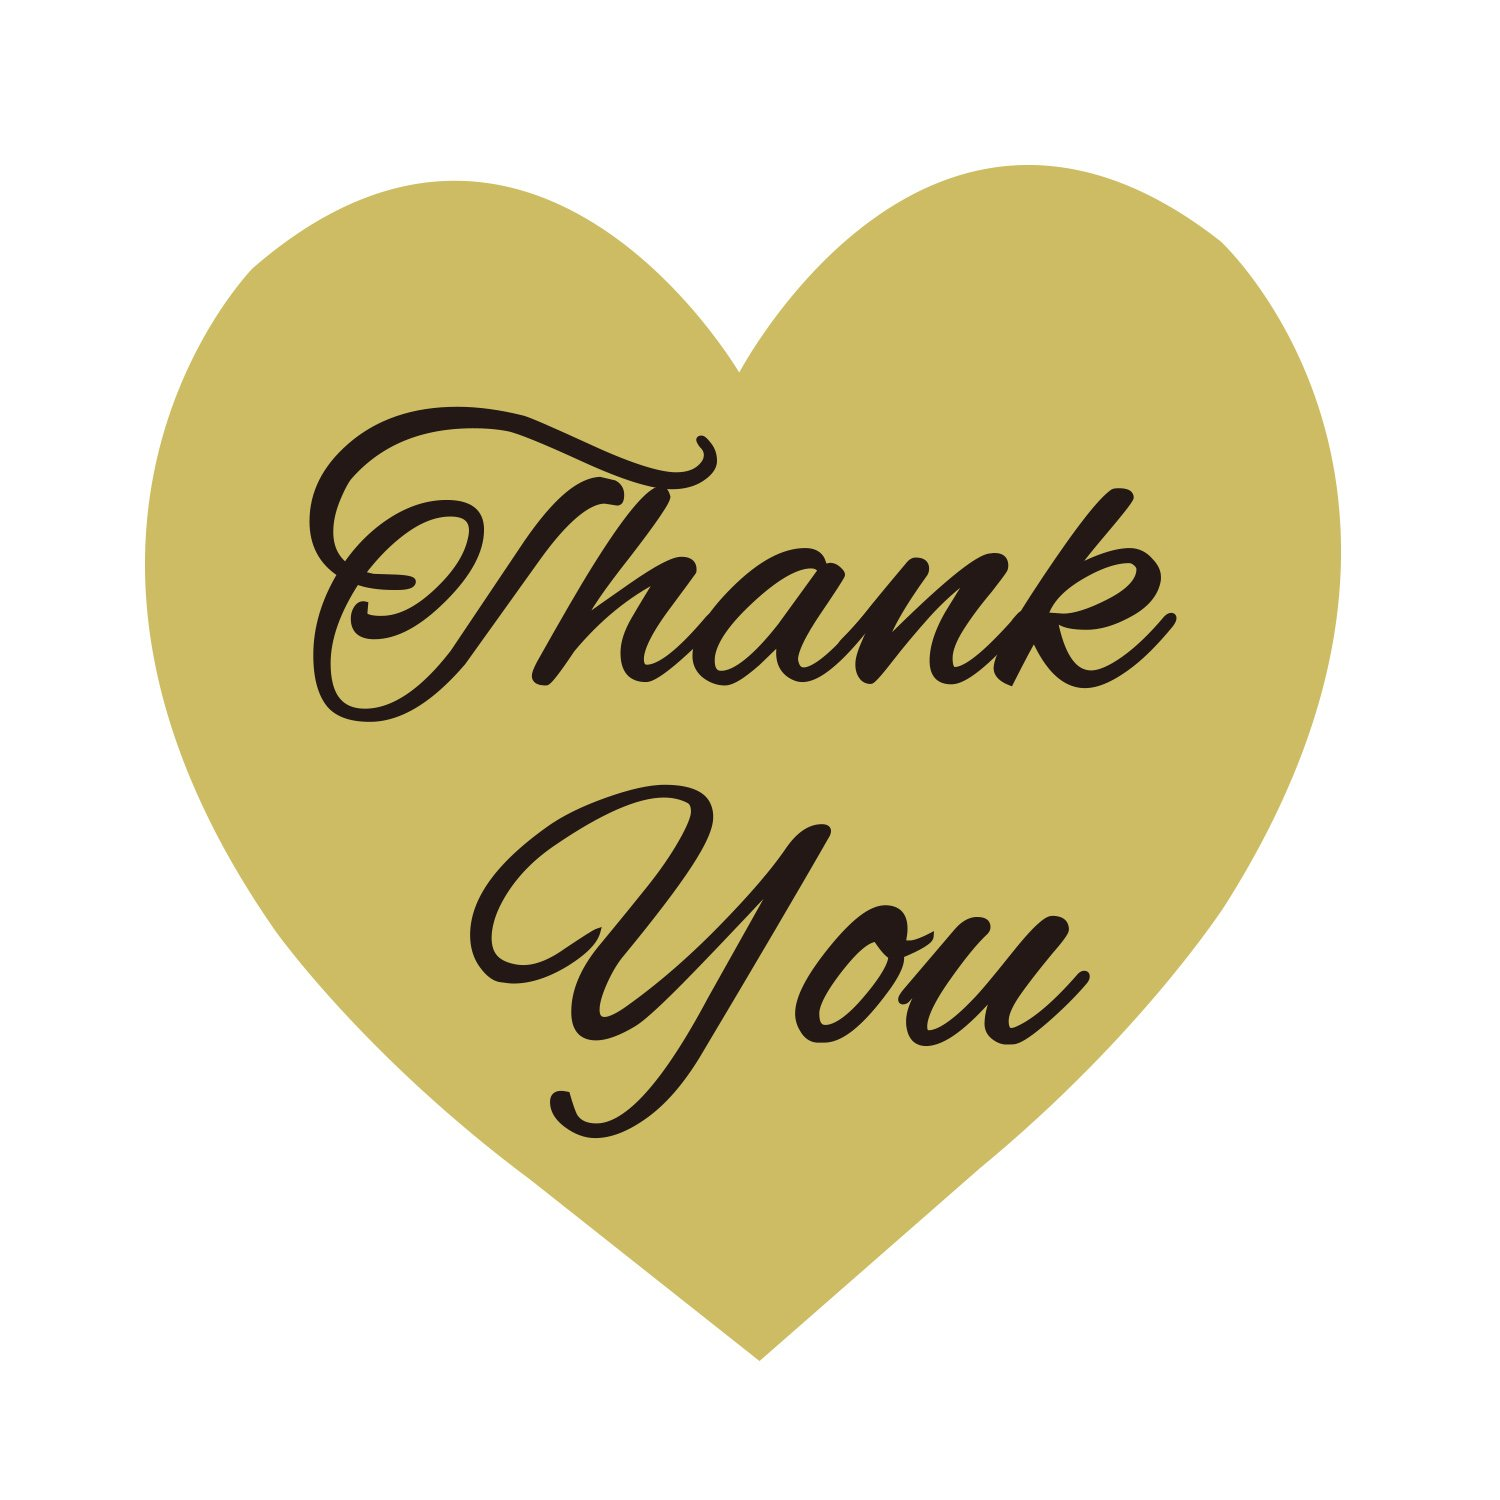 """1.5/"""" Heart Shaped Thank You Stickers 500 Stickers Heart Love Shape Paper Thank You Labels"""